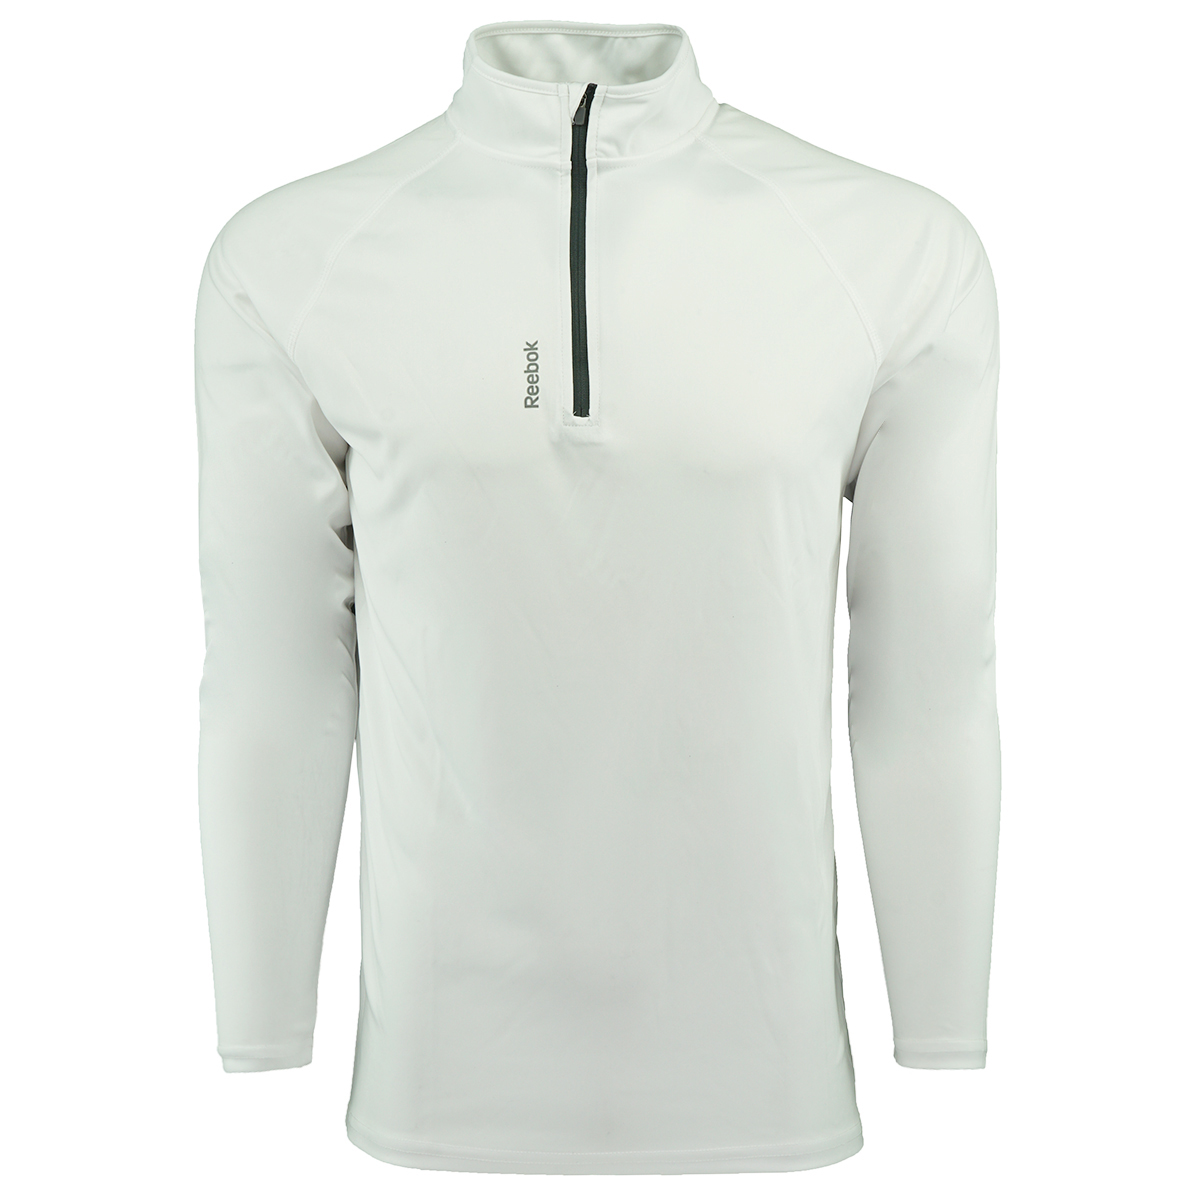 2 Pk. Reebok Men's Play Dry 1/4 Zip Jacket